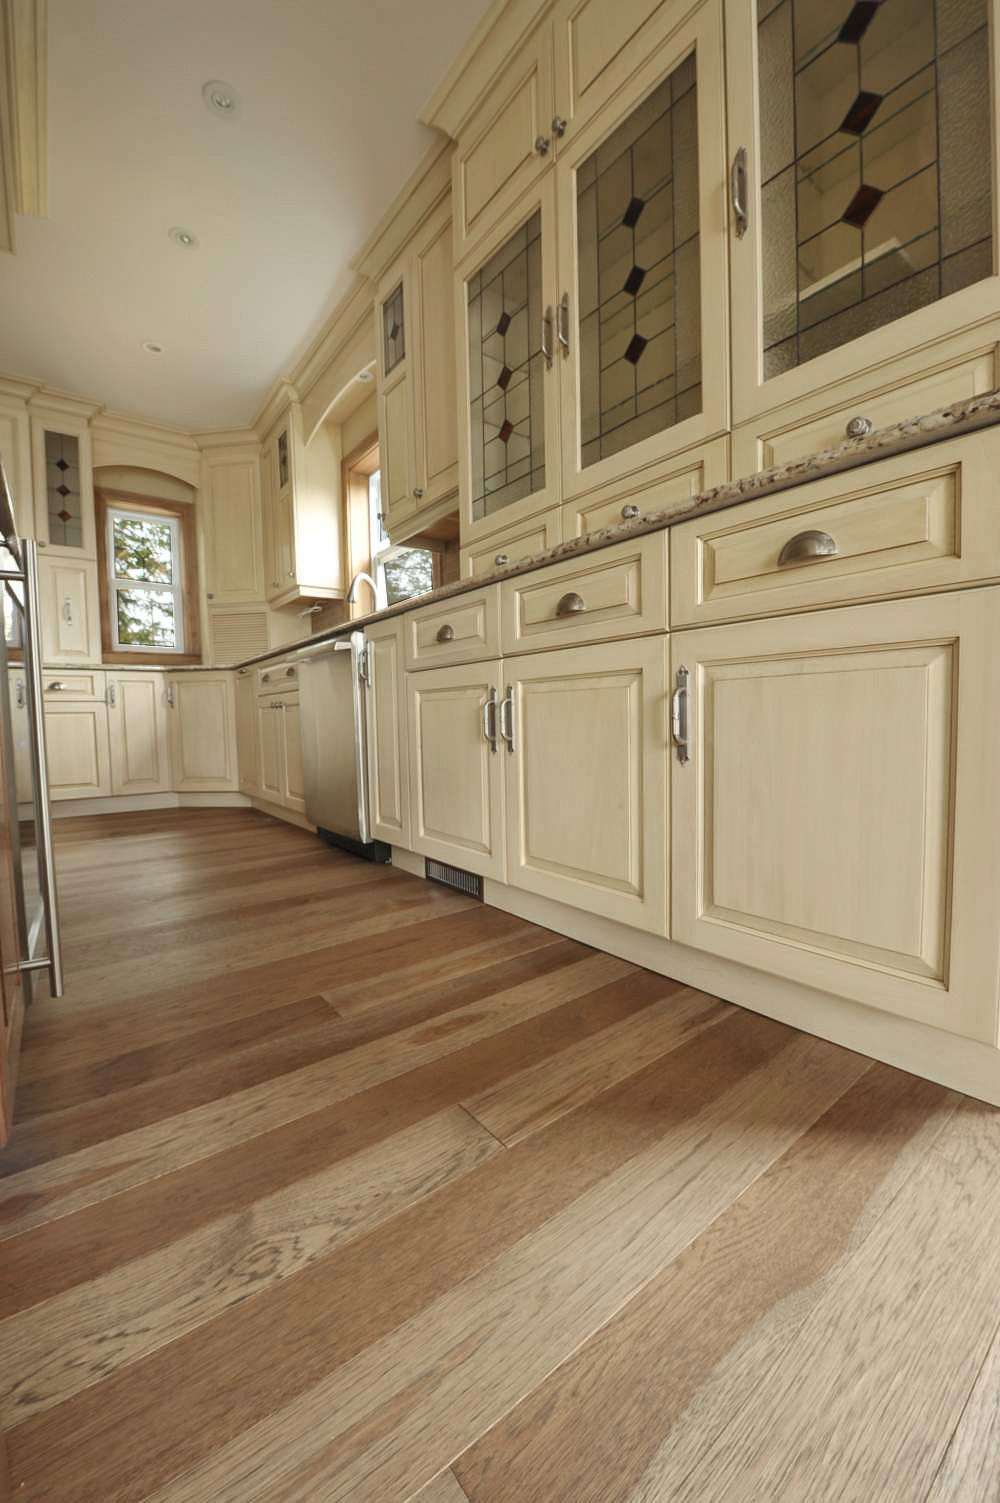 hickory hardwood kitchen floor.jpg